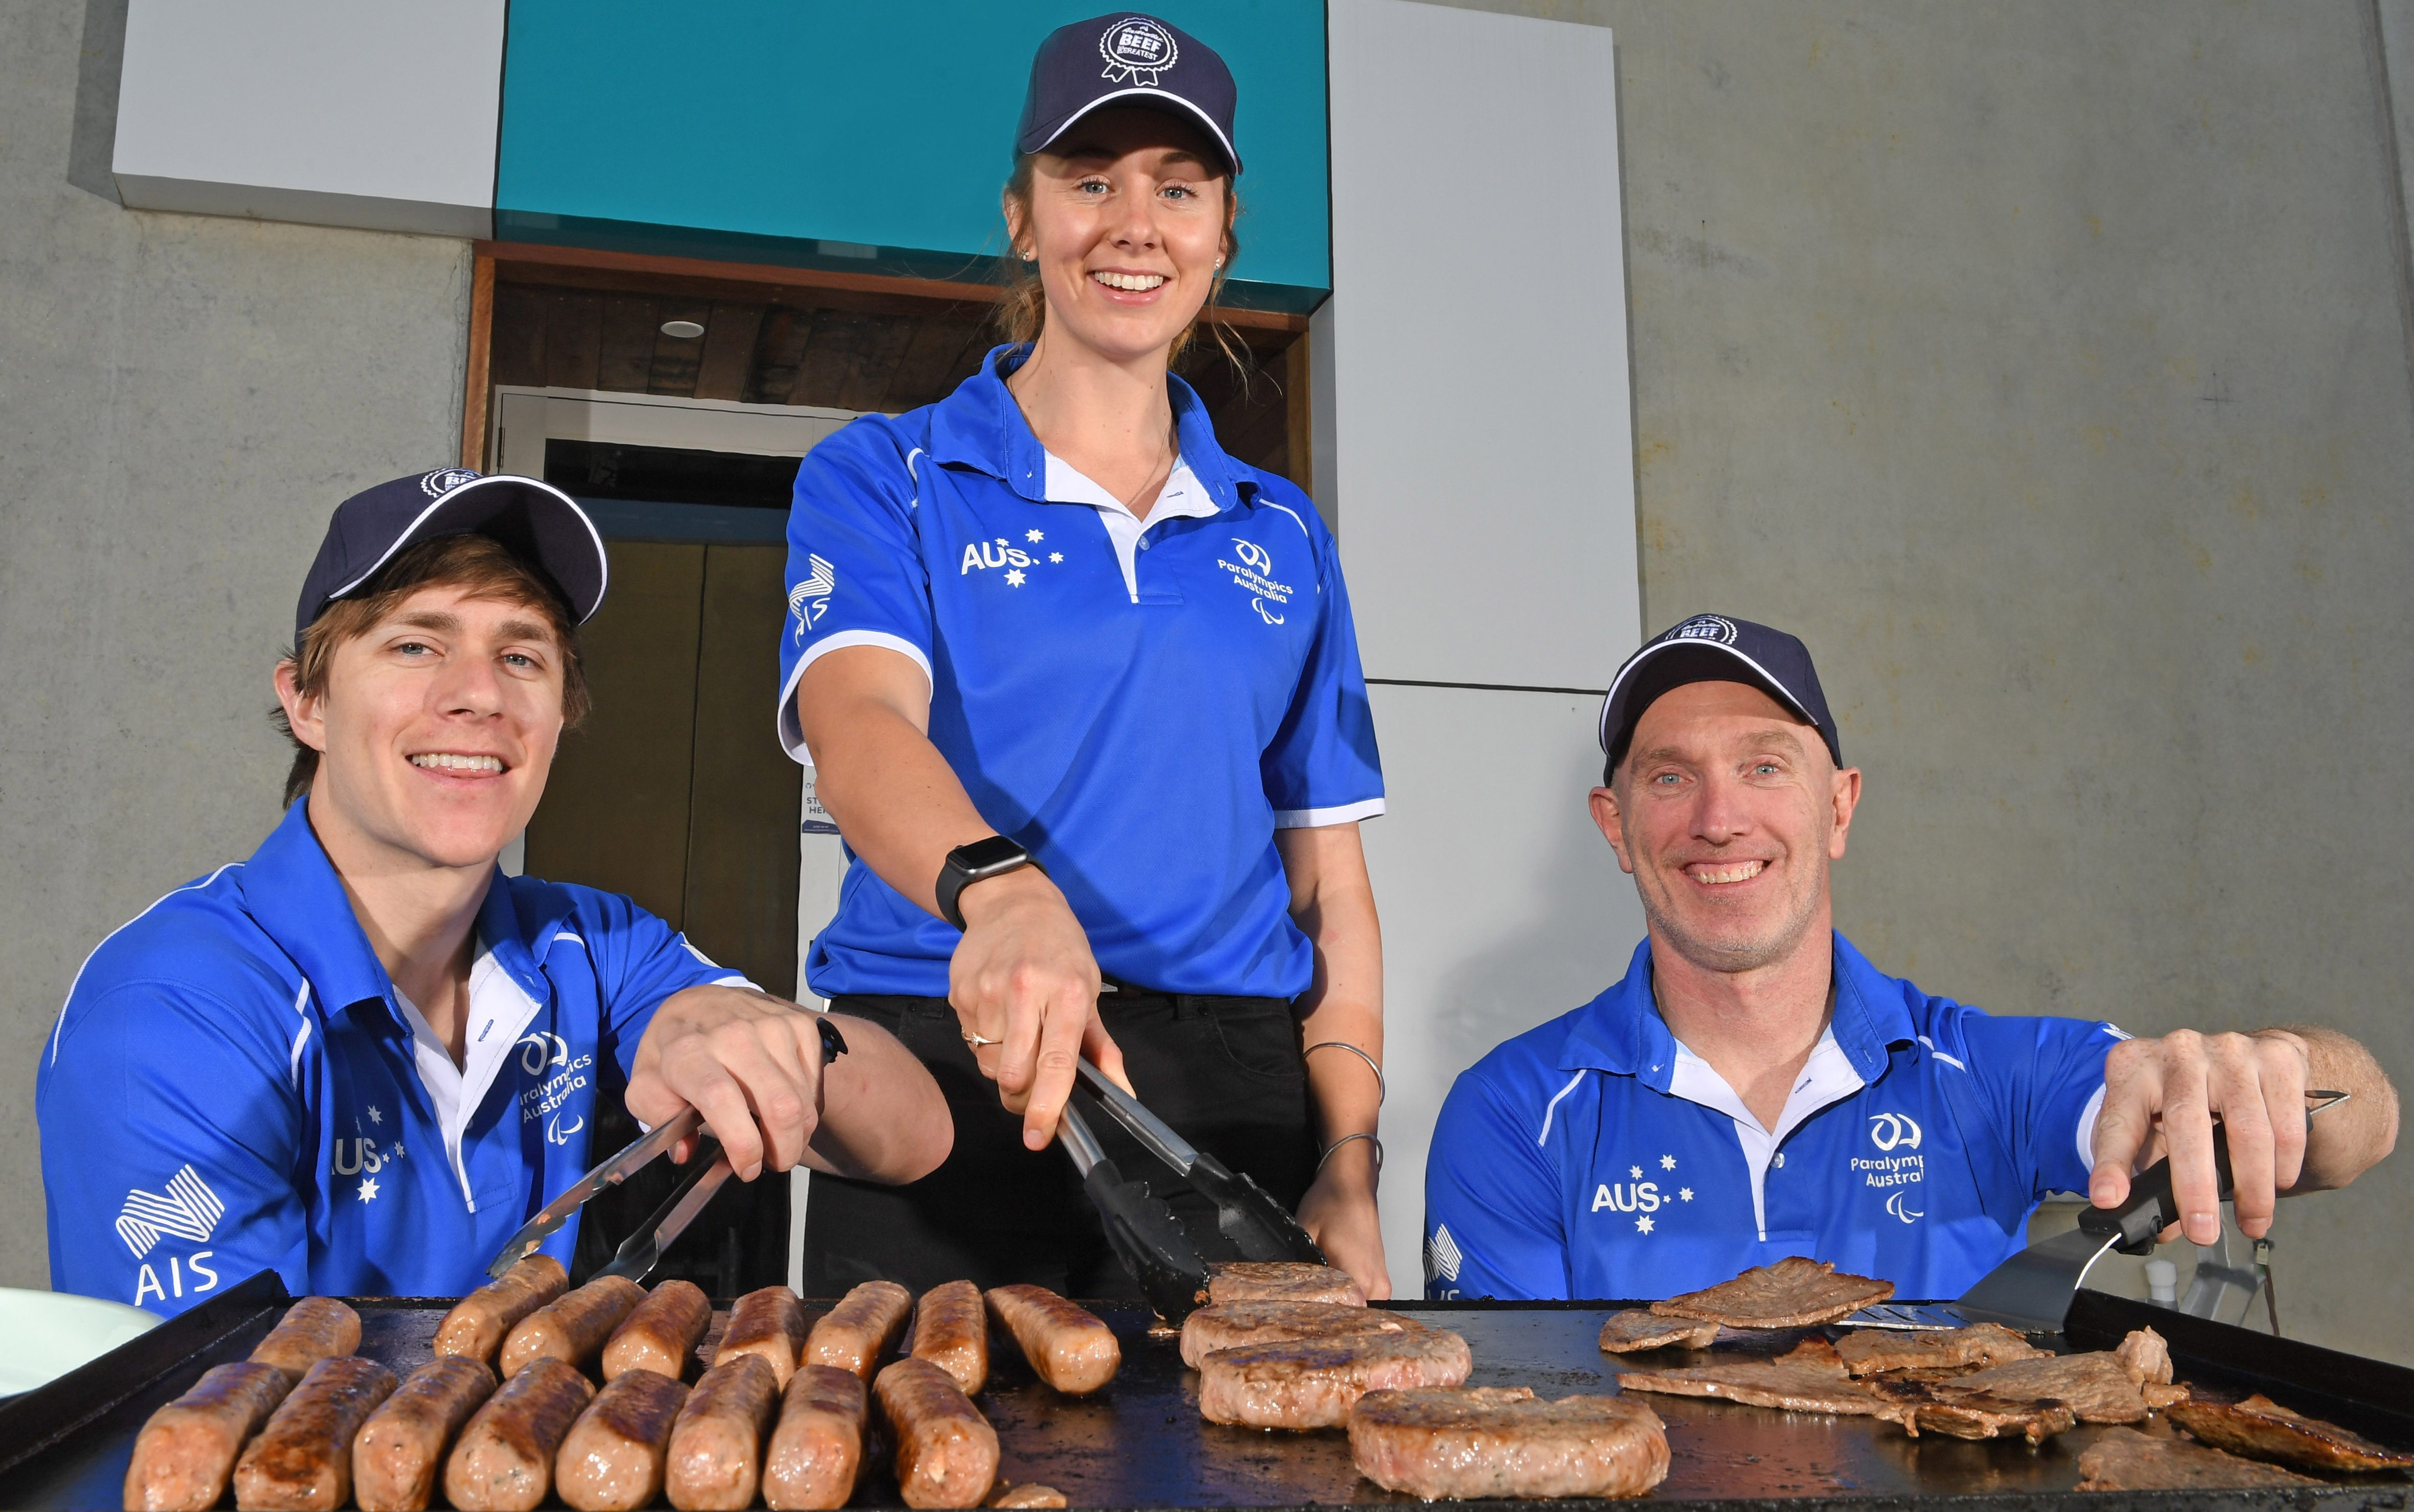 Australian Beef to power the 2020 Paralympic Team